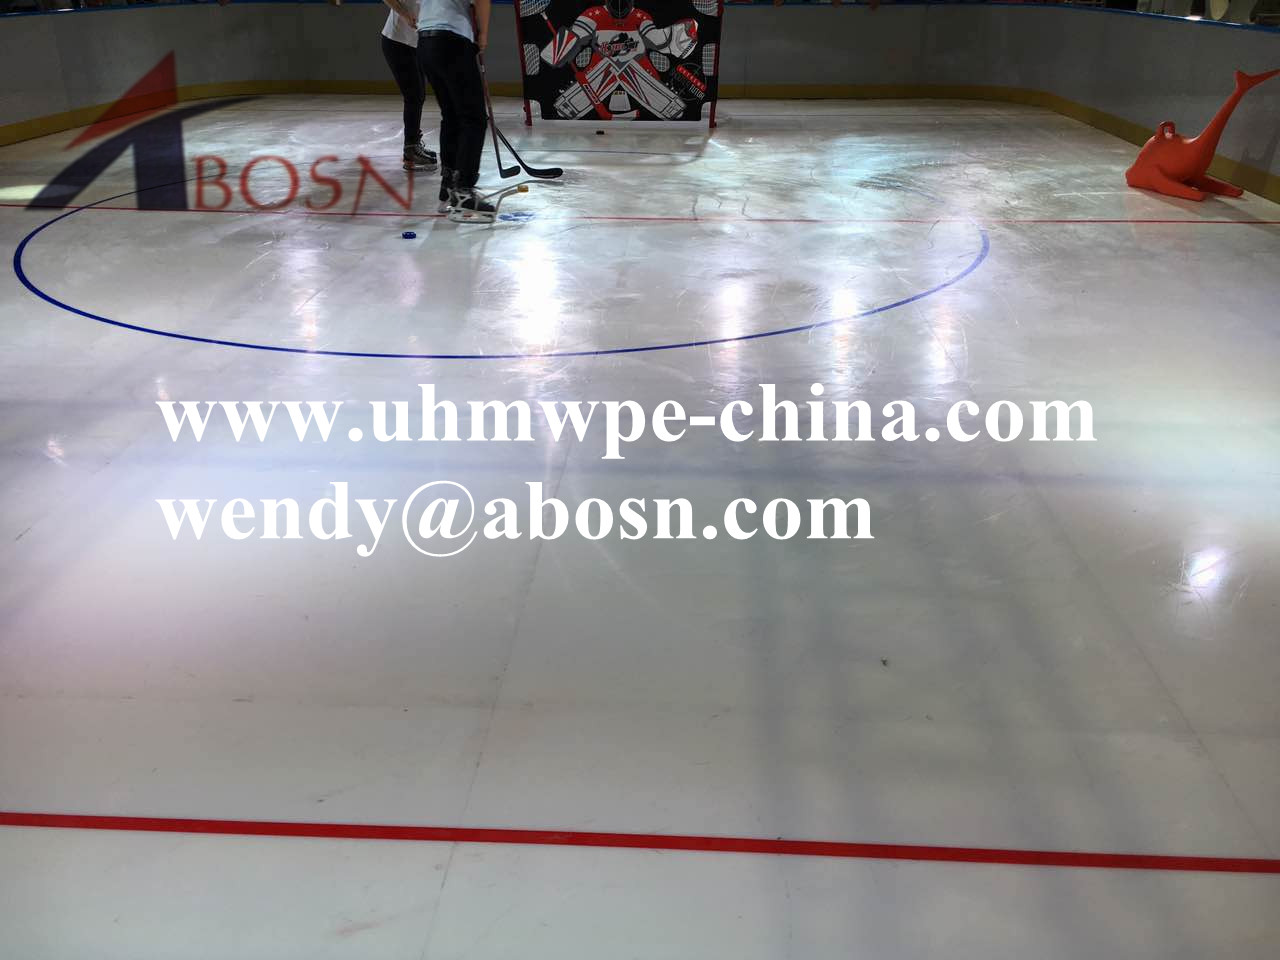 Extreme Glide Mobile Synthetic Ice Rinks for Training